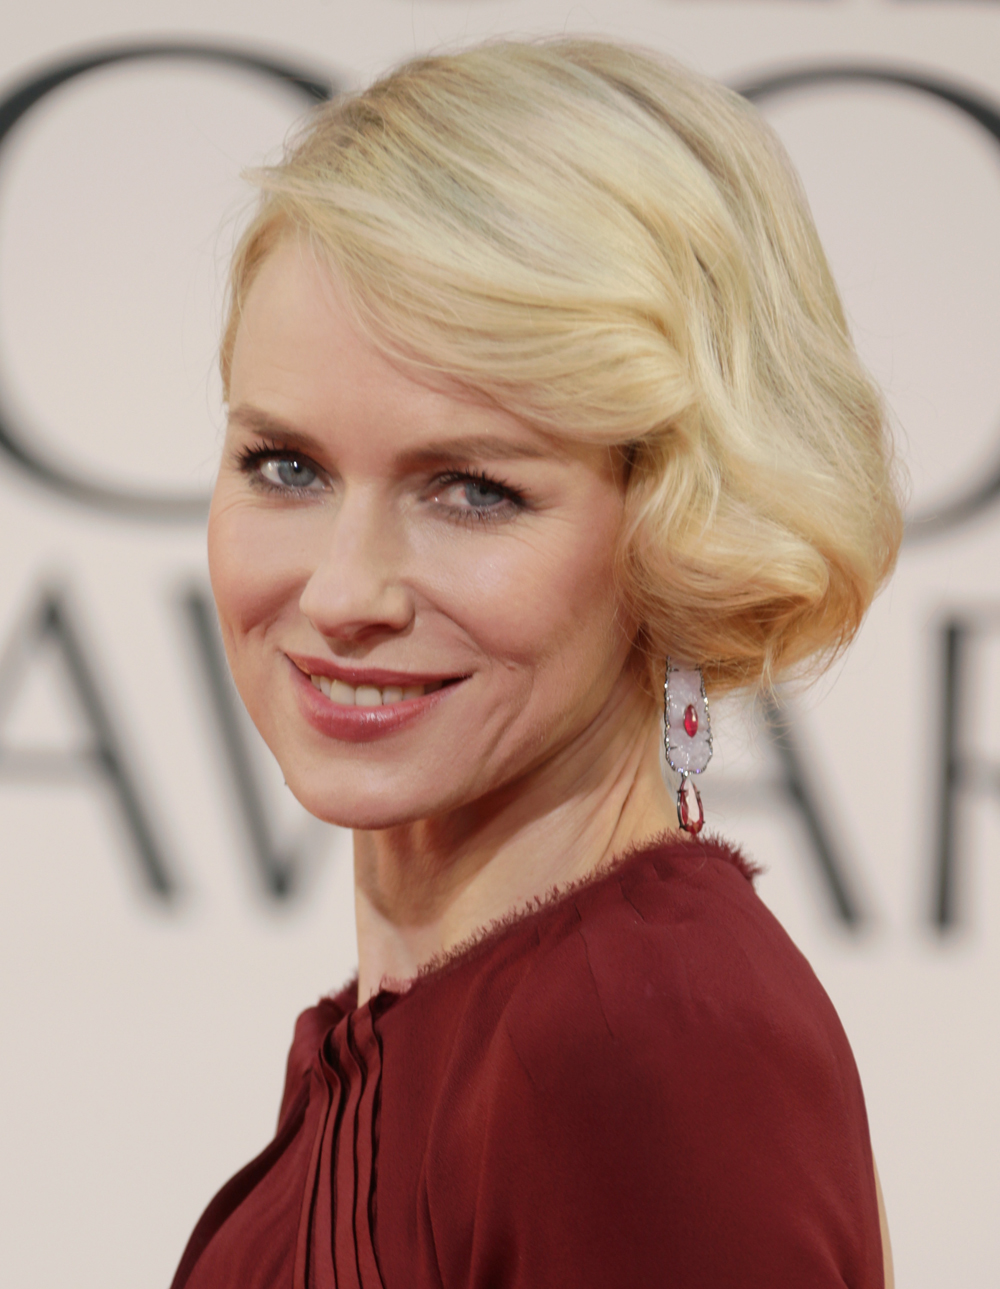 Naomi Watts' Hair at the 2013 Golden Globes